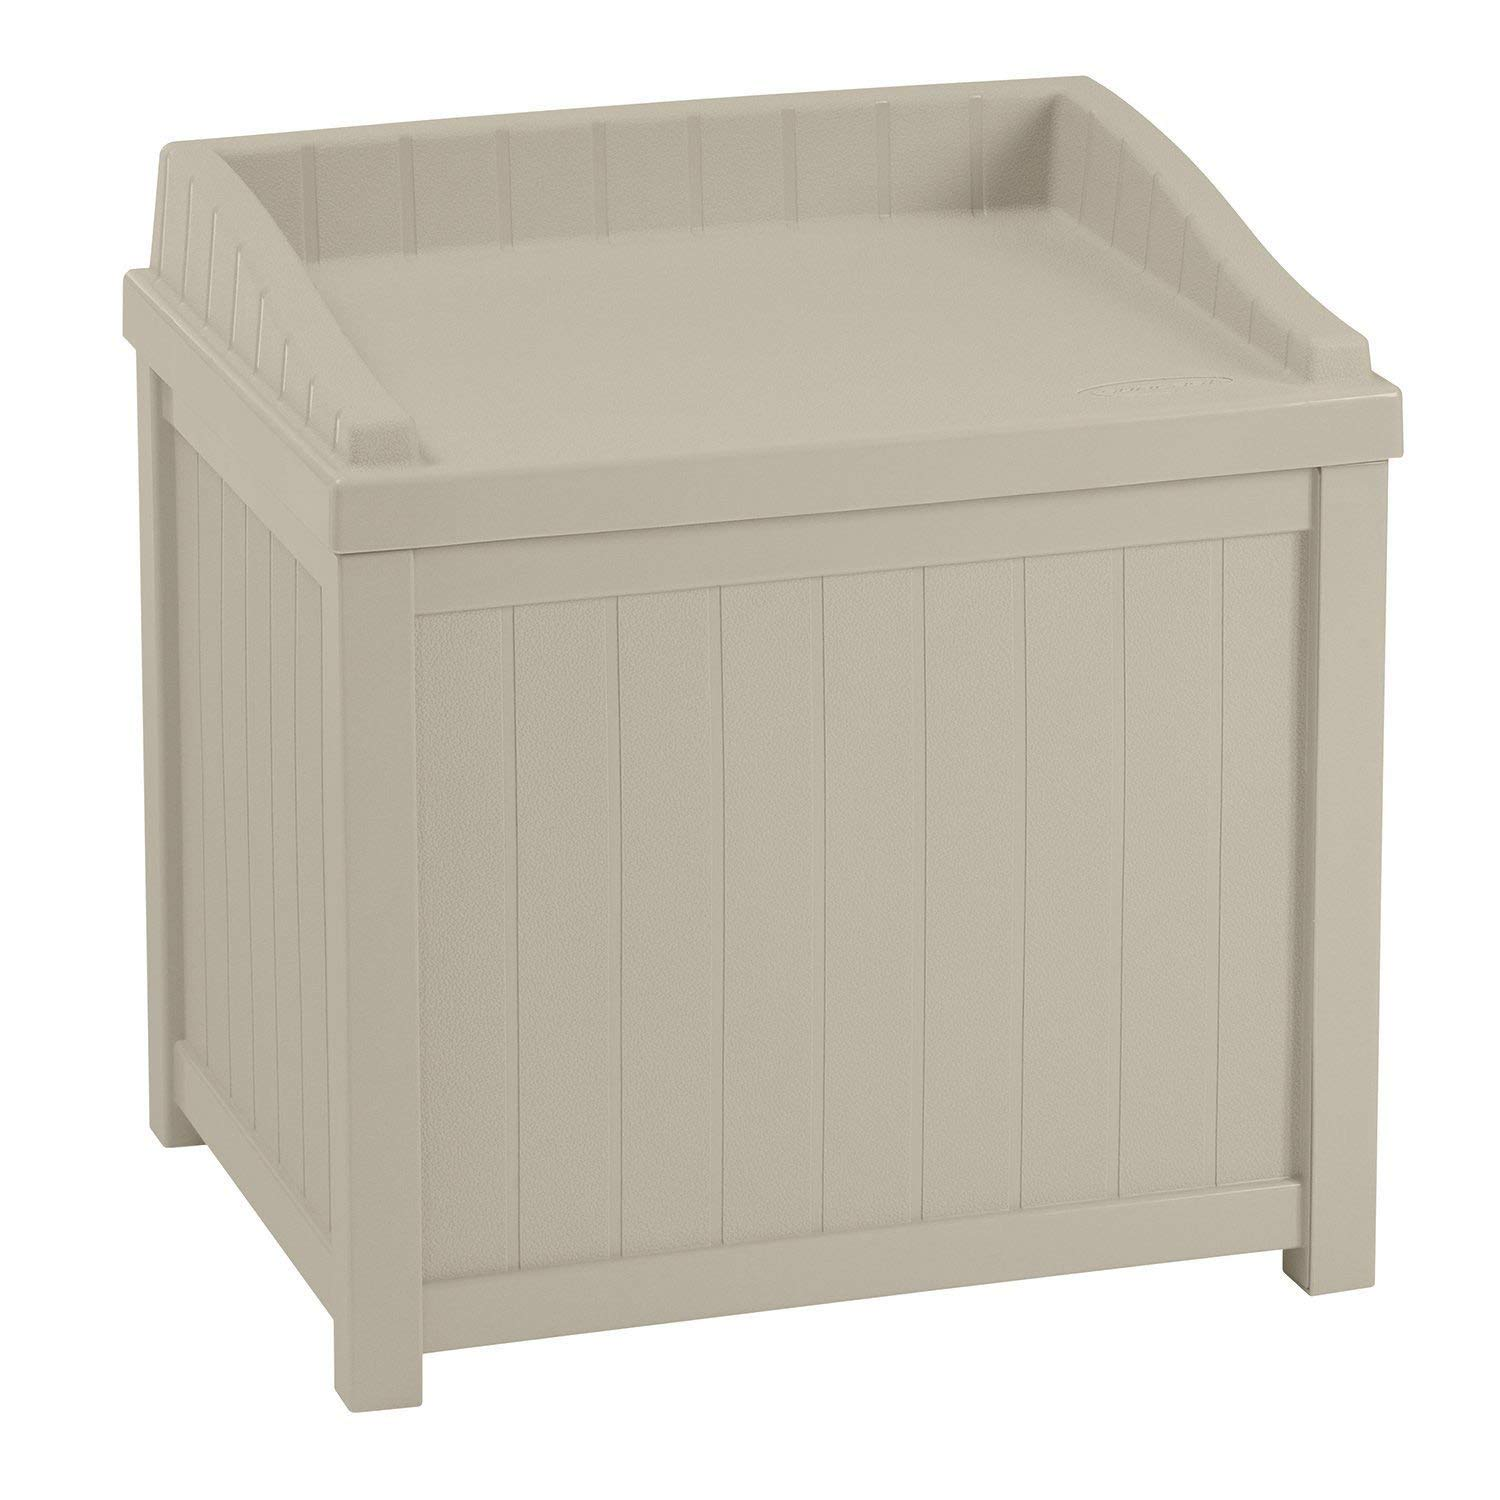 Suncast 22 gallon Deck Box With Seat SS1000A